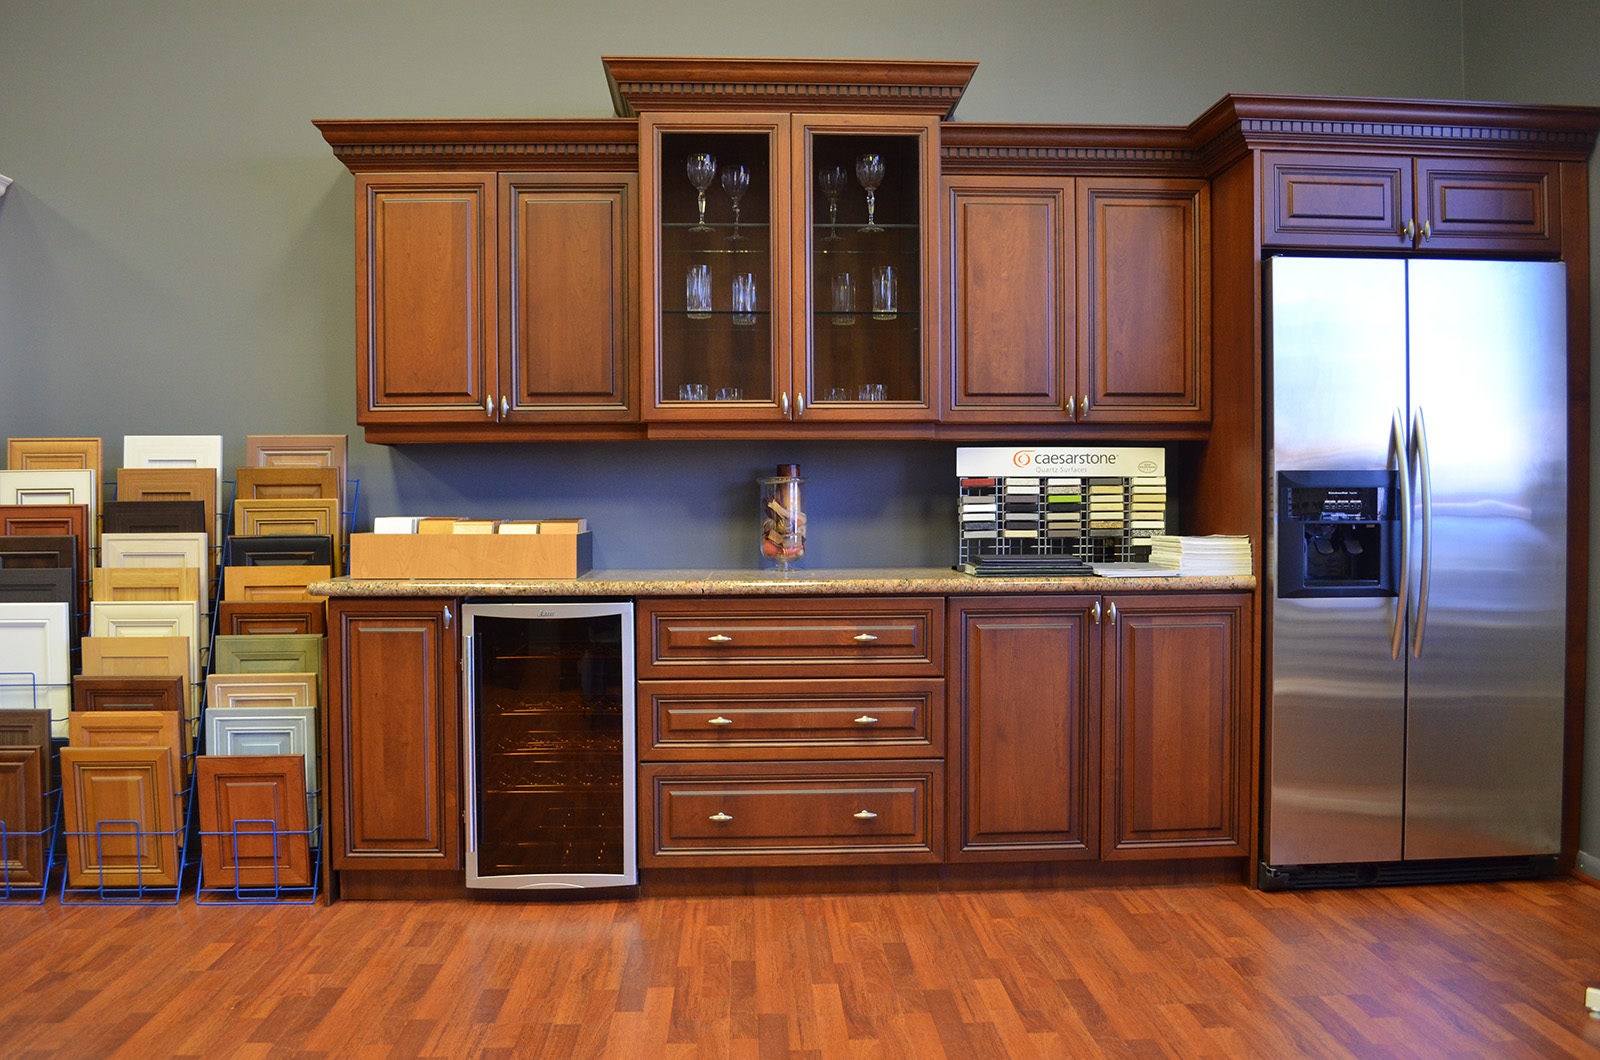 kitchen cabinet refacing is the perfect way to get the look of new cabinets without investing in a total cabinetry replacement and when youre looking for